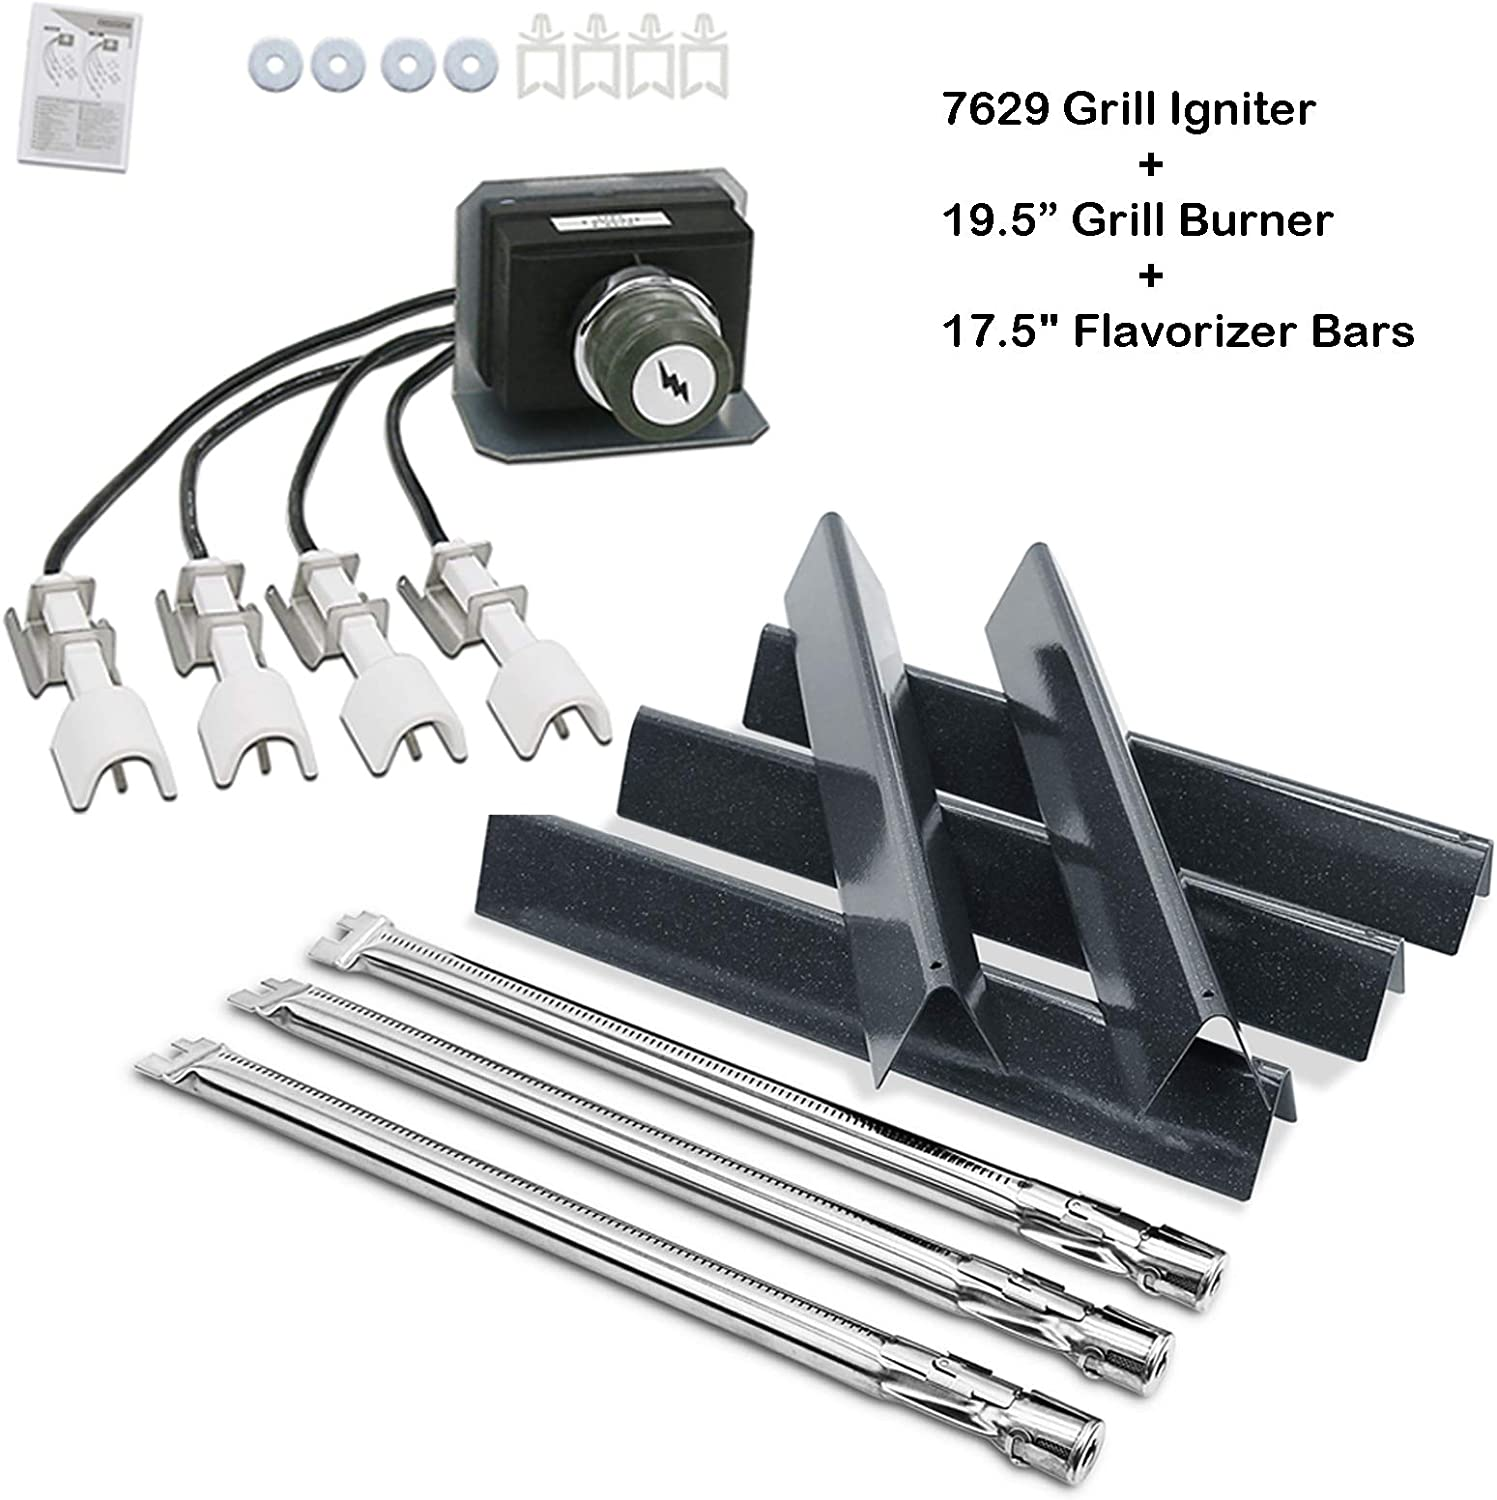 """Uniflasy 17.5"""" Flavorizer Bar, 19.5"""" Grill Burner, Grill Igniter Kit for Weber Genesis 330, E330, S330 Gas Grills with Front Control (2011 - Newer), Grill Parts Kit for Weber Genesis 330 Series"""